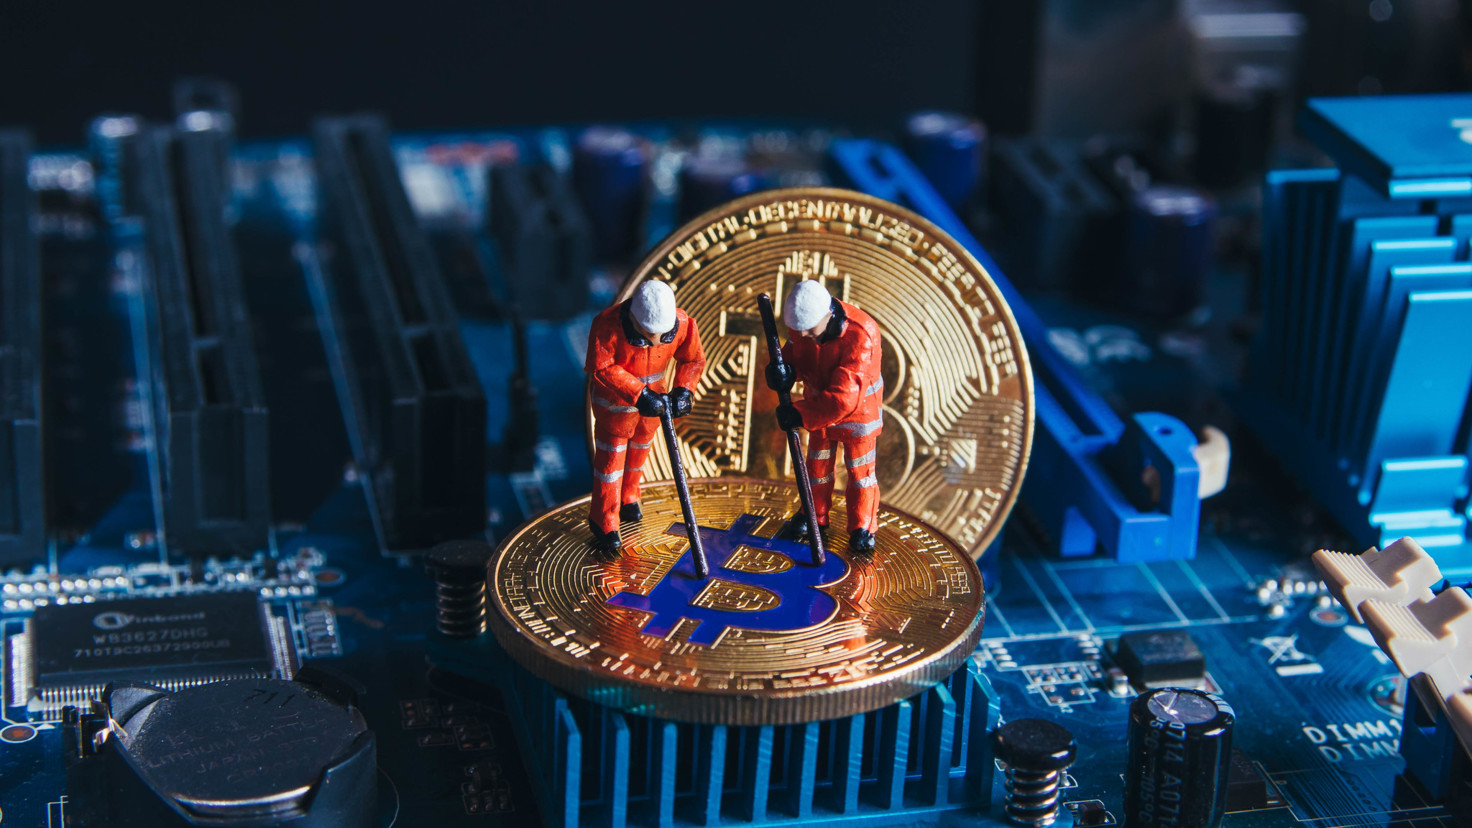 Bitcoin Mining Operation Is Uncovered During U.K. Drug Bust - WSJ